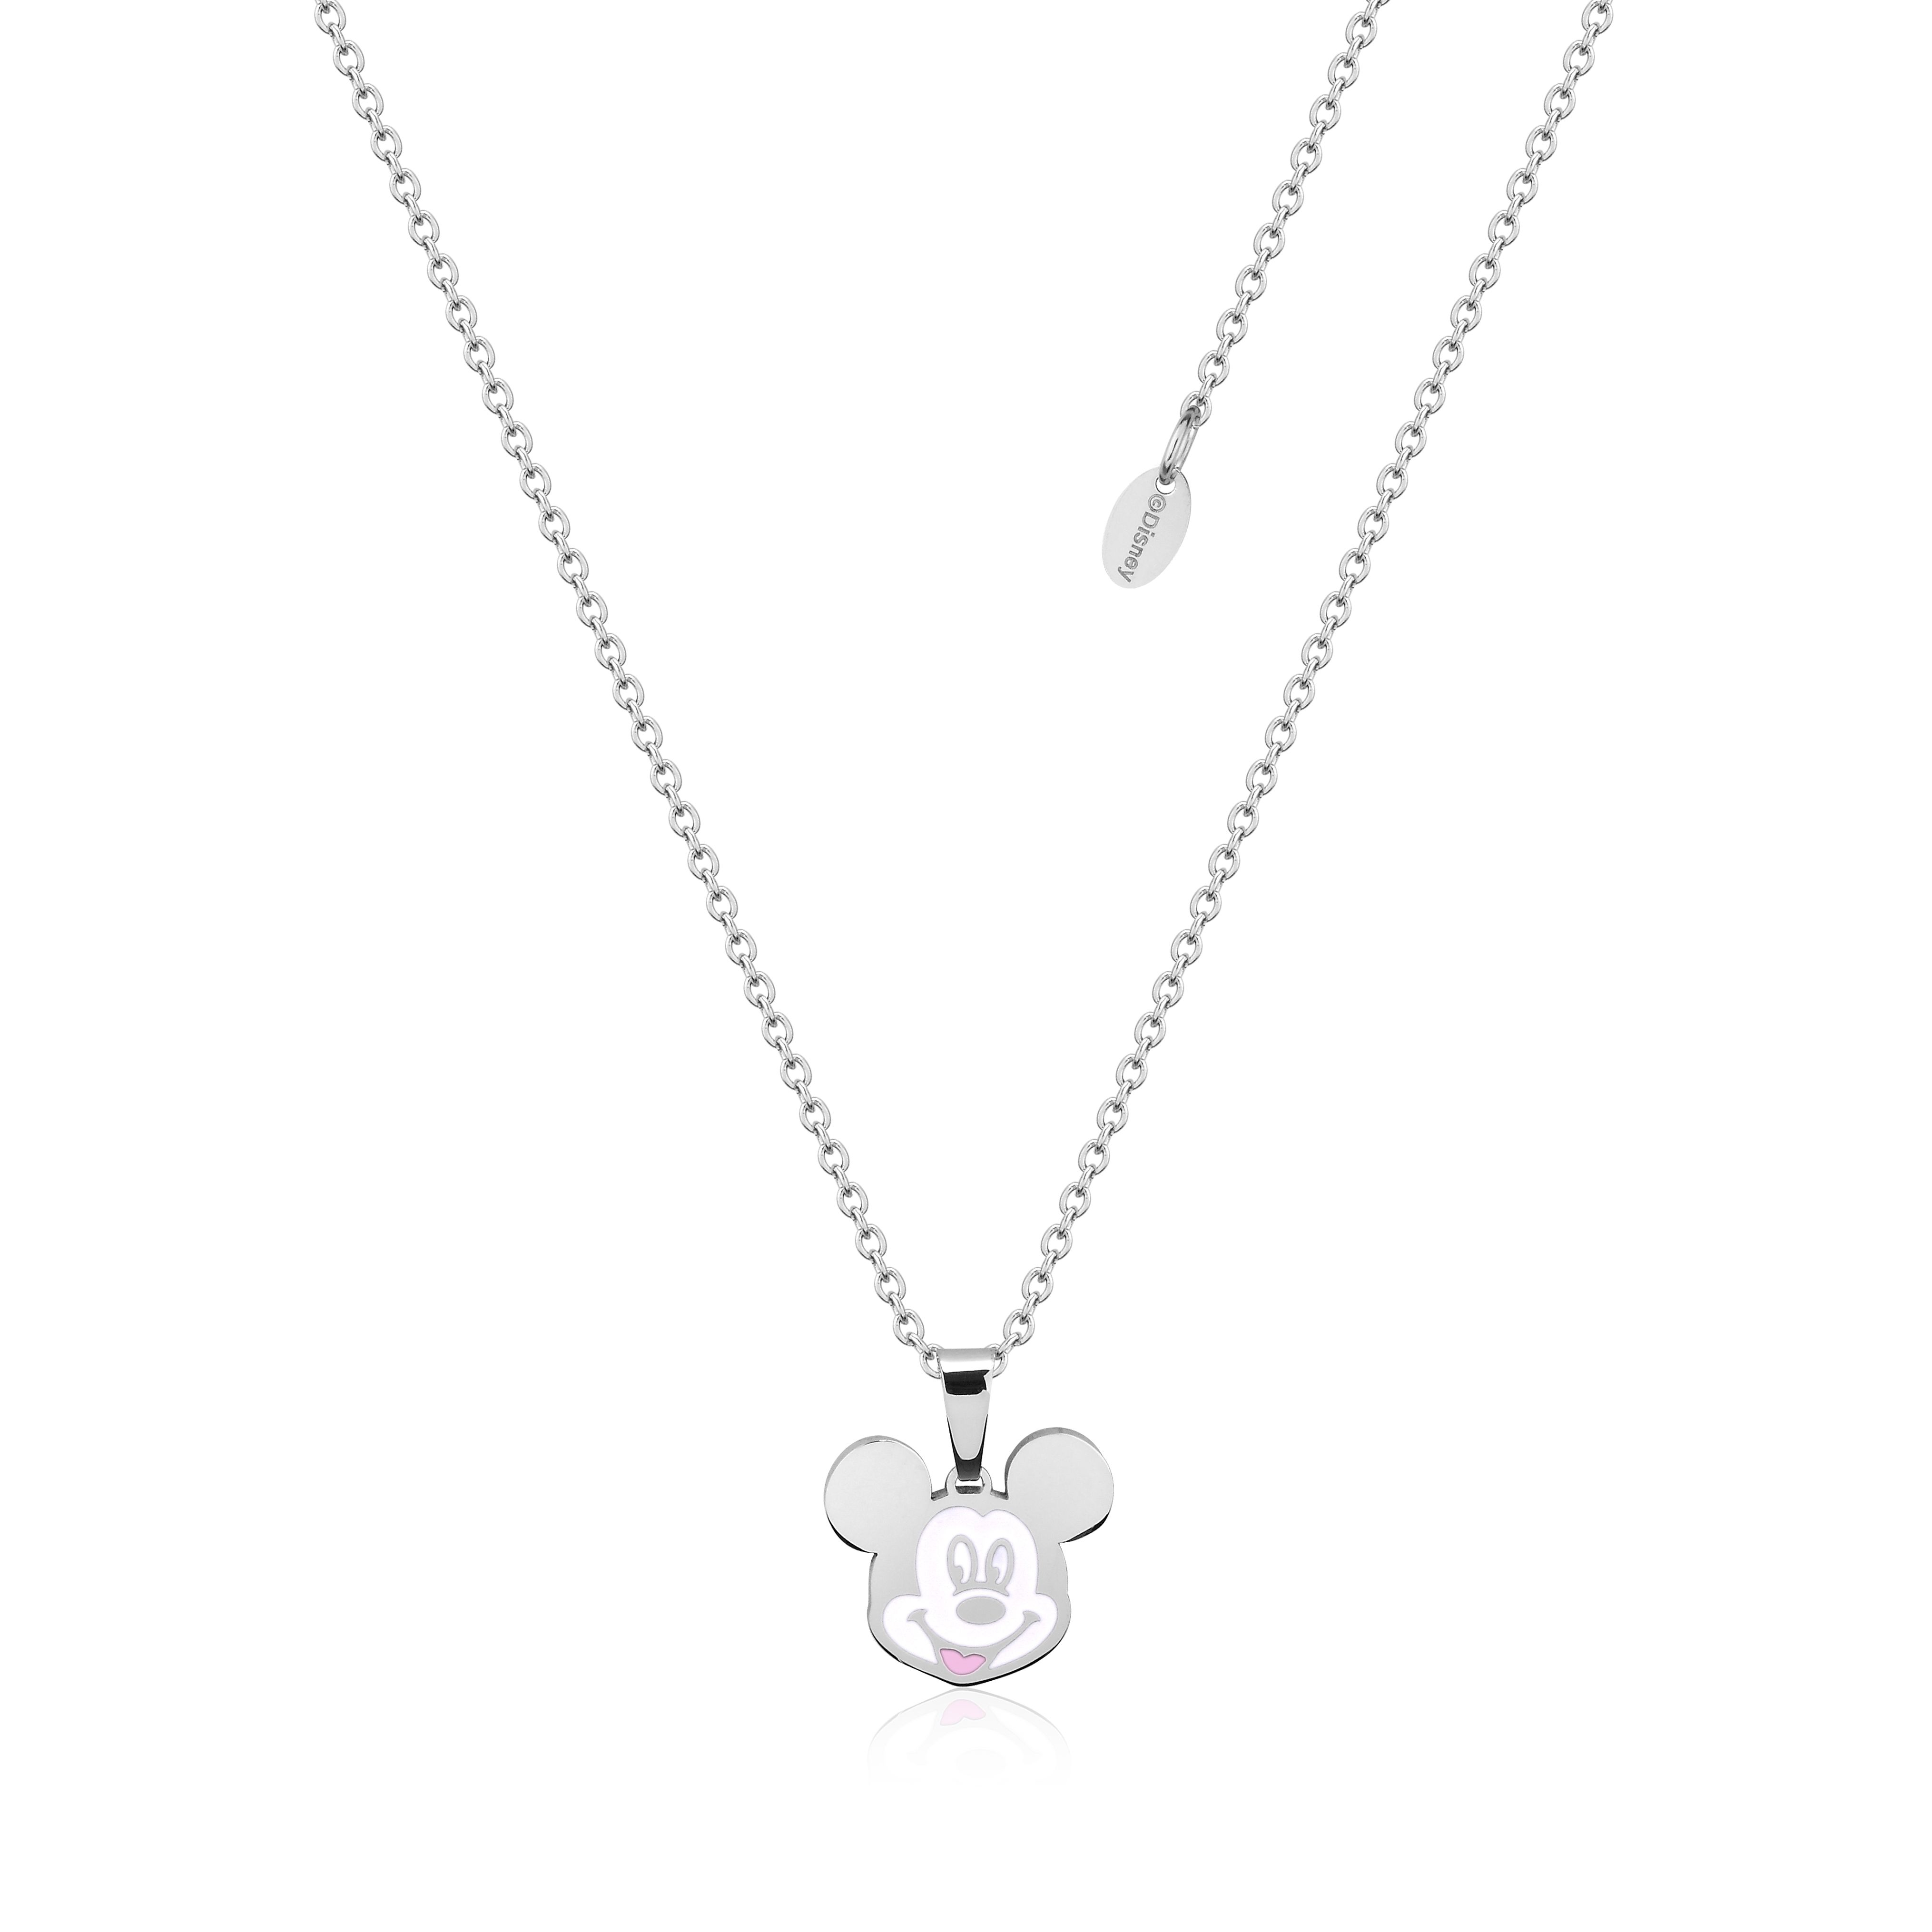 DISNEY Stainless Steel 47cm Animated Mickey Mouse Pendant on Chain